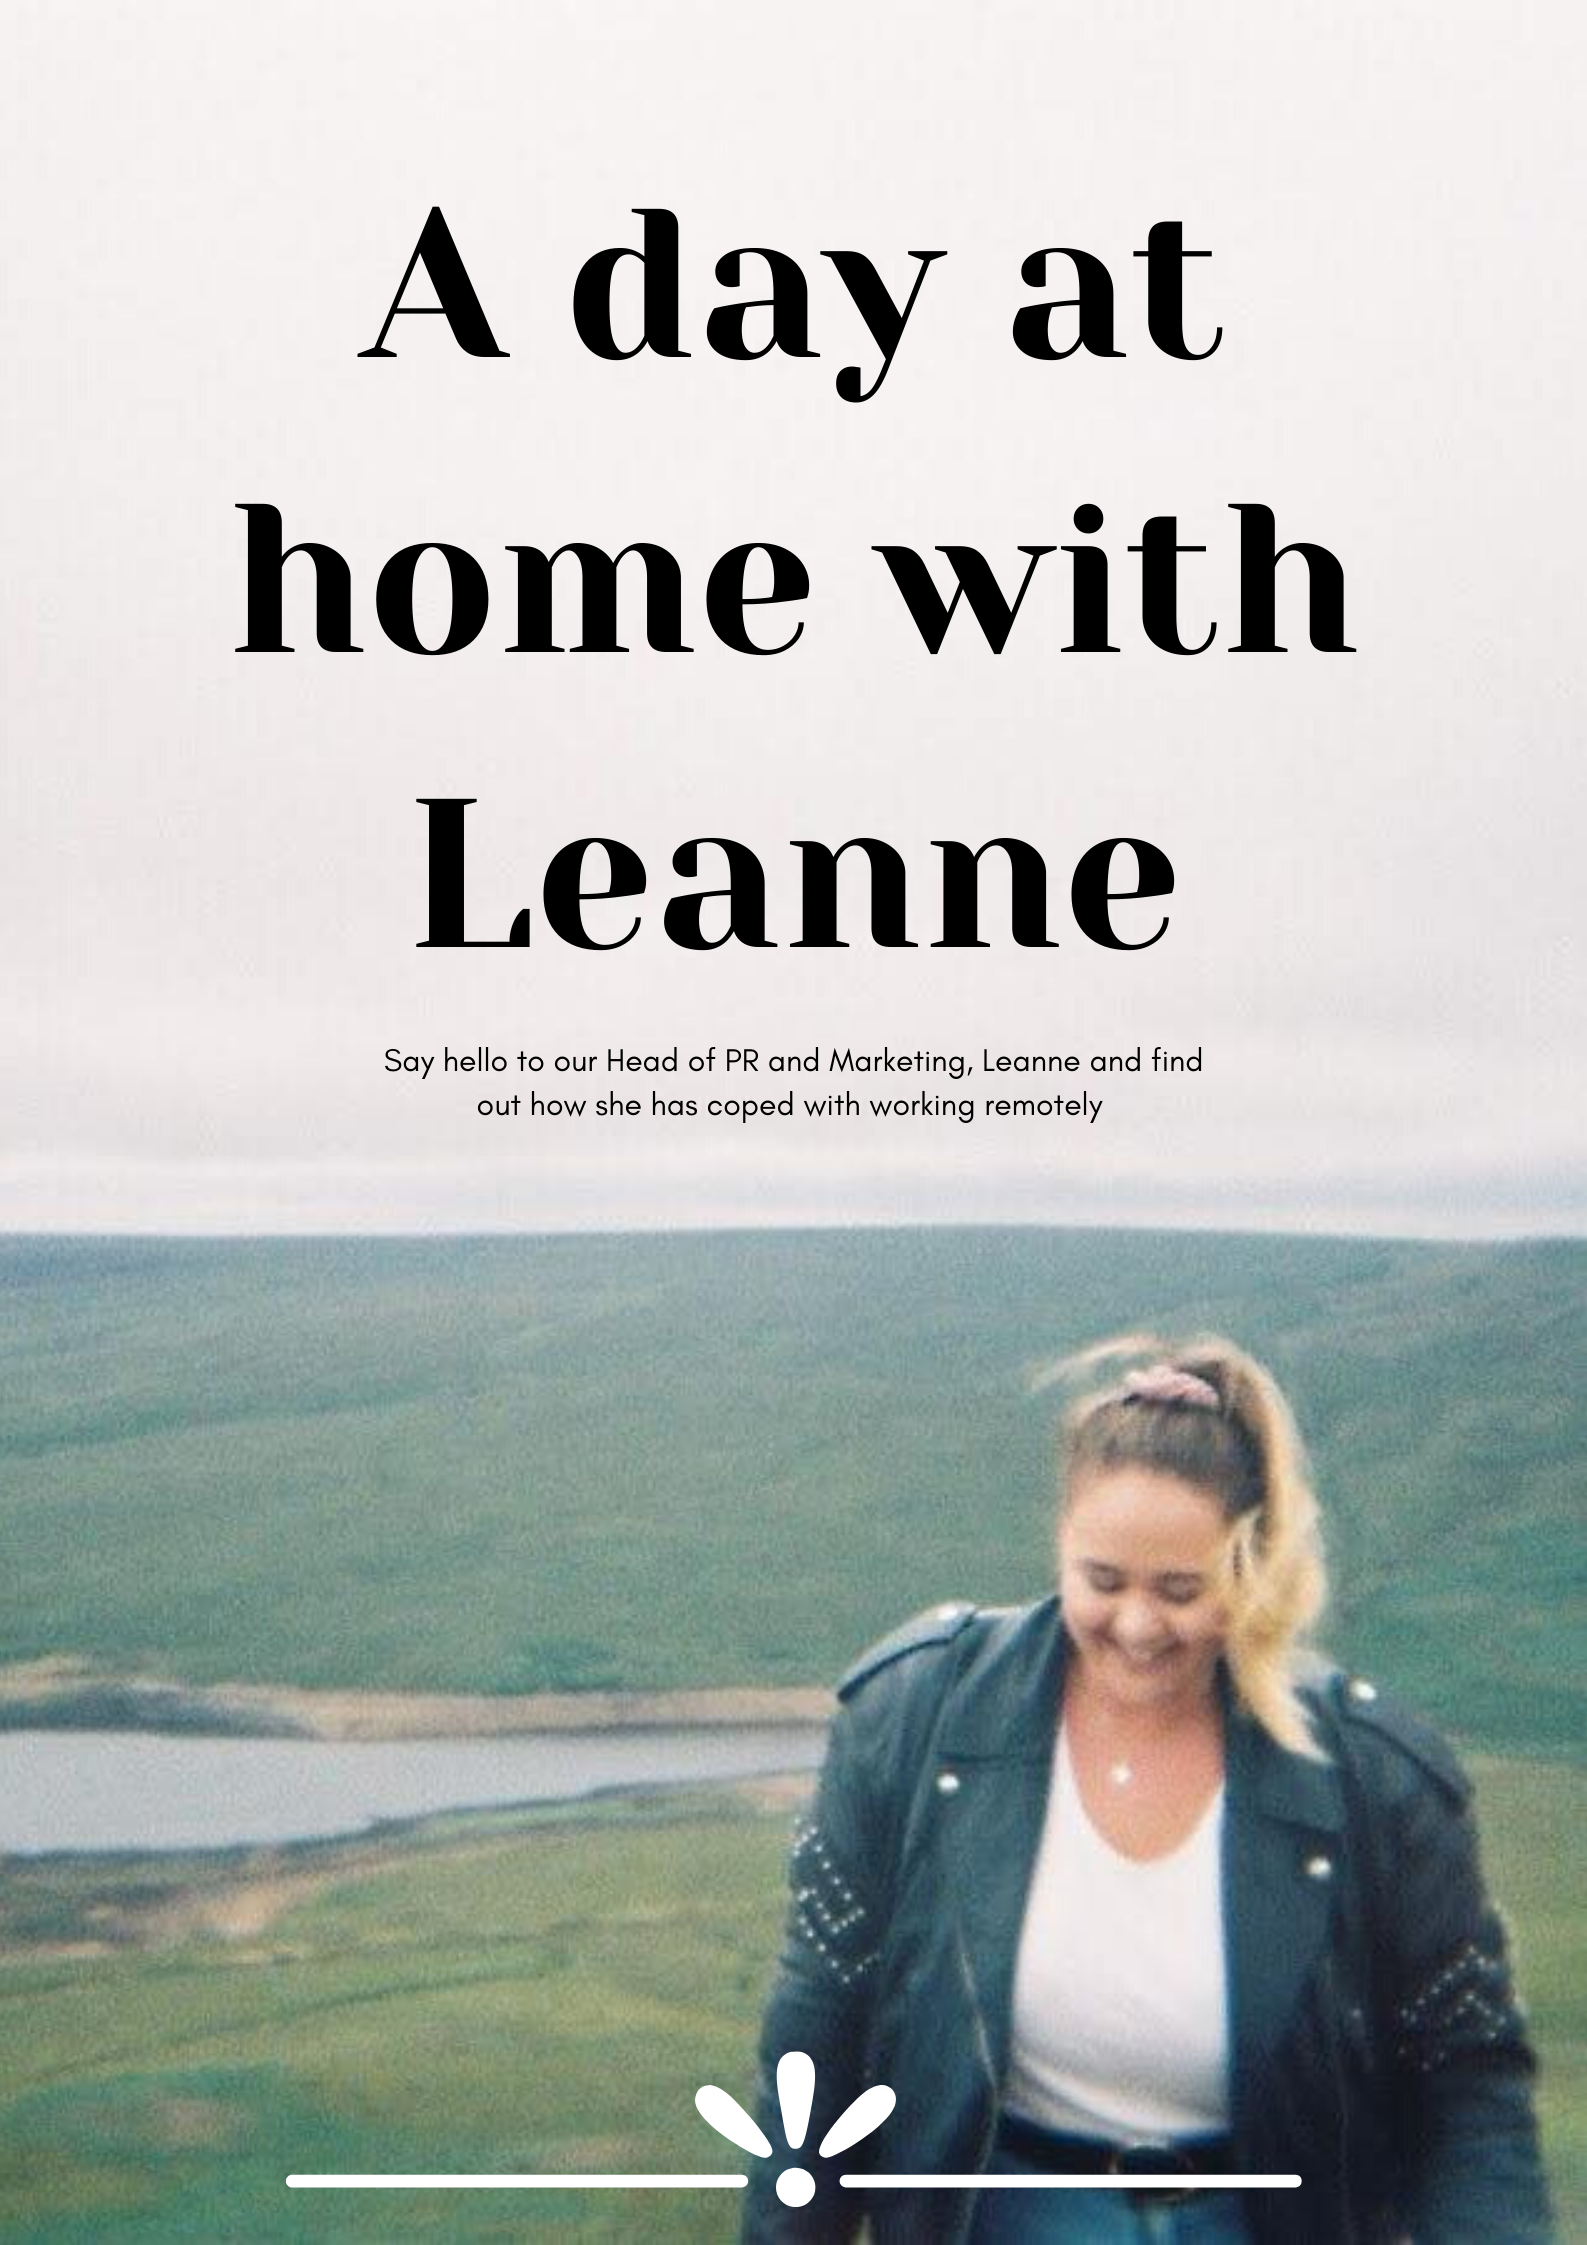 A day at home with Leanne🌷